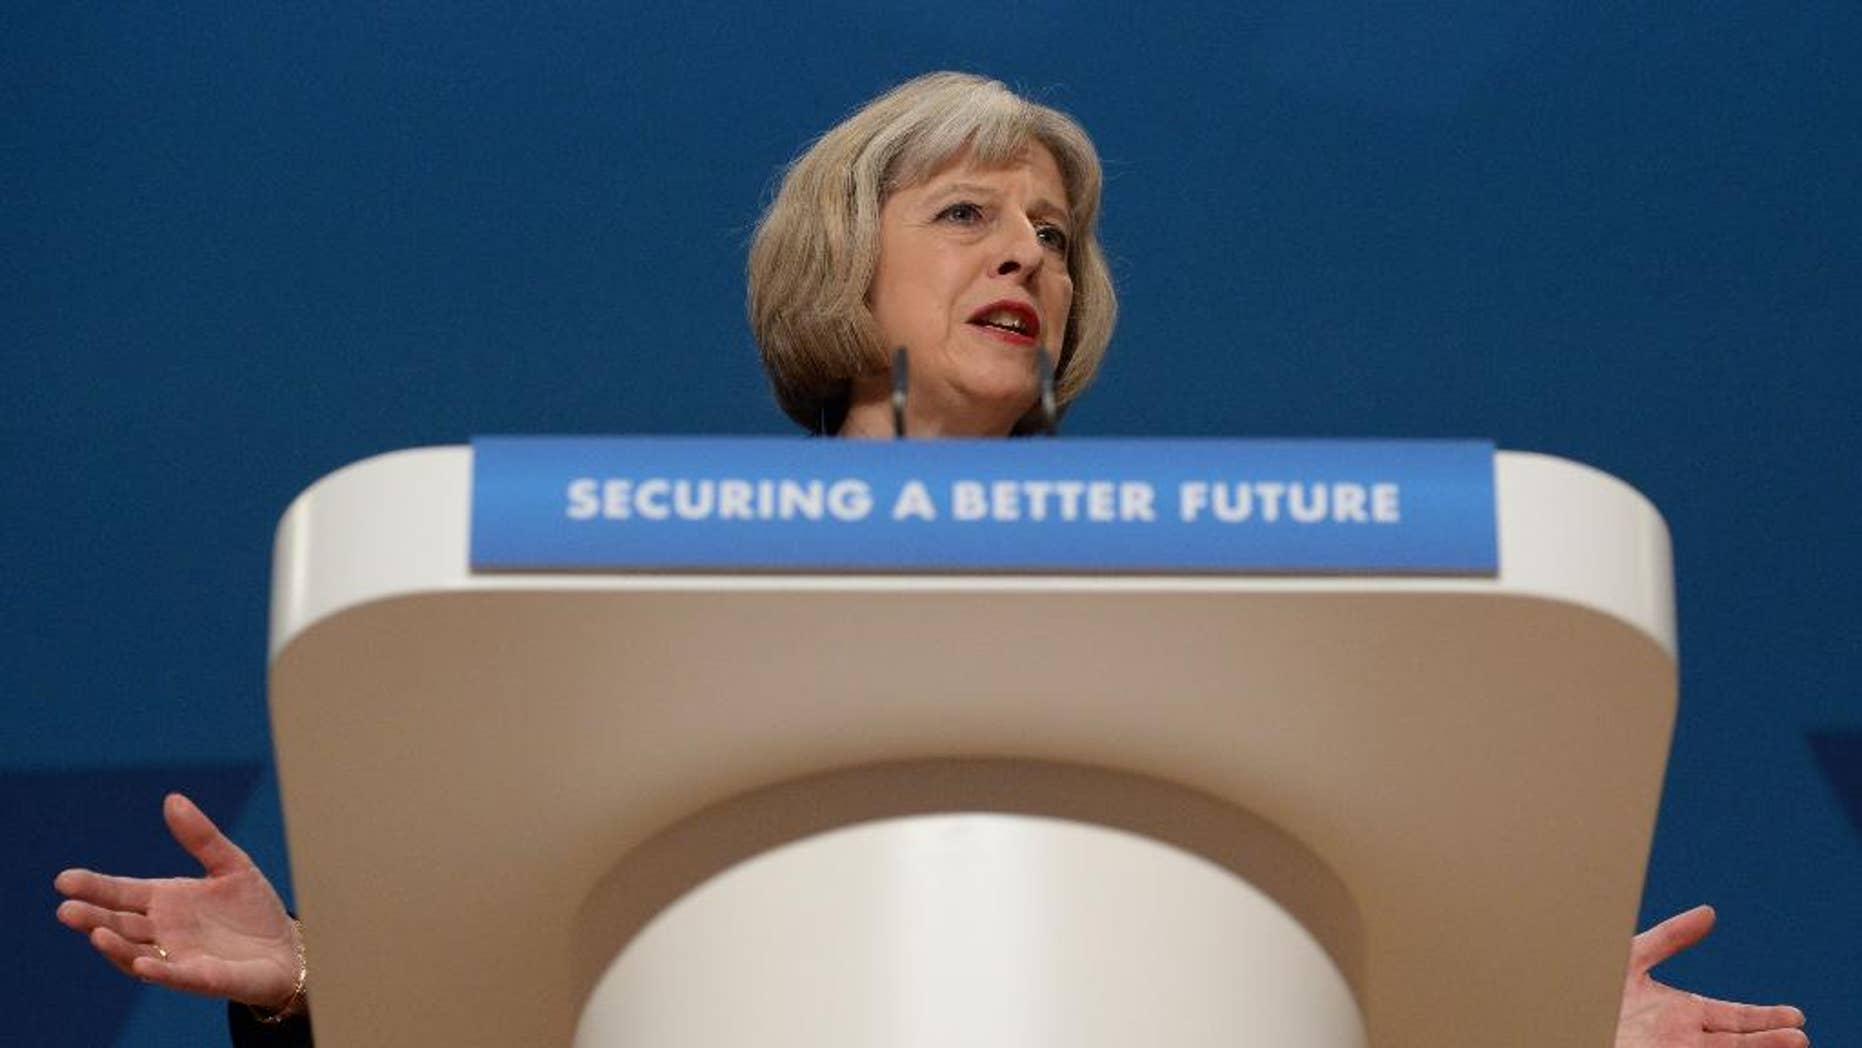 """British Home Secretary Theresa May gives her speech to delegates at the Conservative Party annual conference in Birmingham, England, Tuesday, Sept. 30, 2014. Britain's interior minister says people with extremist views could be barred from appearing on television or publishing on social media even if they are not breaking any laws. Home Secretary Theresa May told a conference of the governing Conservatives that if re-elected next year the party will introduce powers to disrupt people who """"spread poisonous hatred"""" while staying within the law. May said Tuesday that only a minority of extremists are violent, but there is """"a thread that binds"""" nonviolent extremism to terrorism. (AP Photo/Stefan Rosseau, PA Wire)     UNITED KINGDOM OUT      -    NO SALES    -   NO ARCHIVES"""